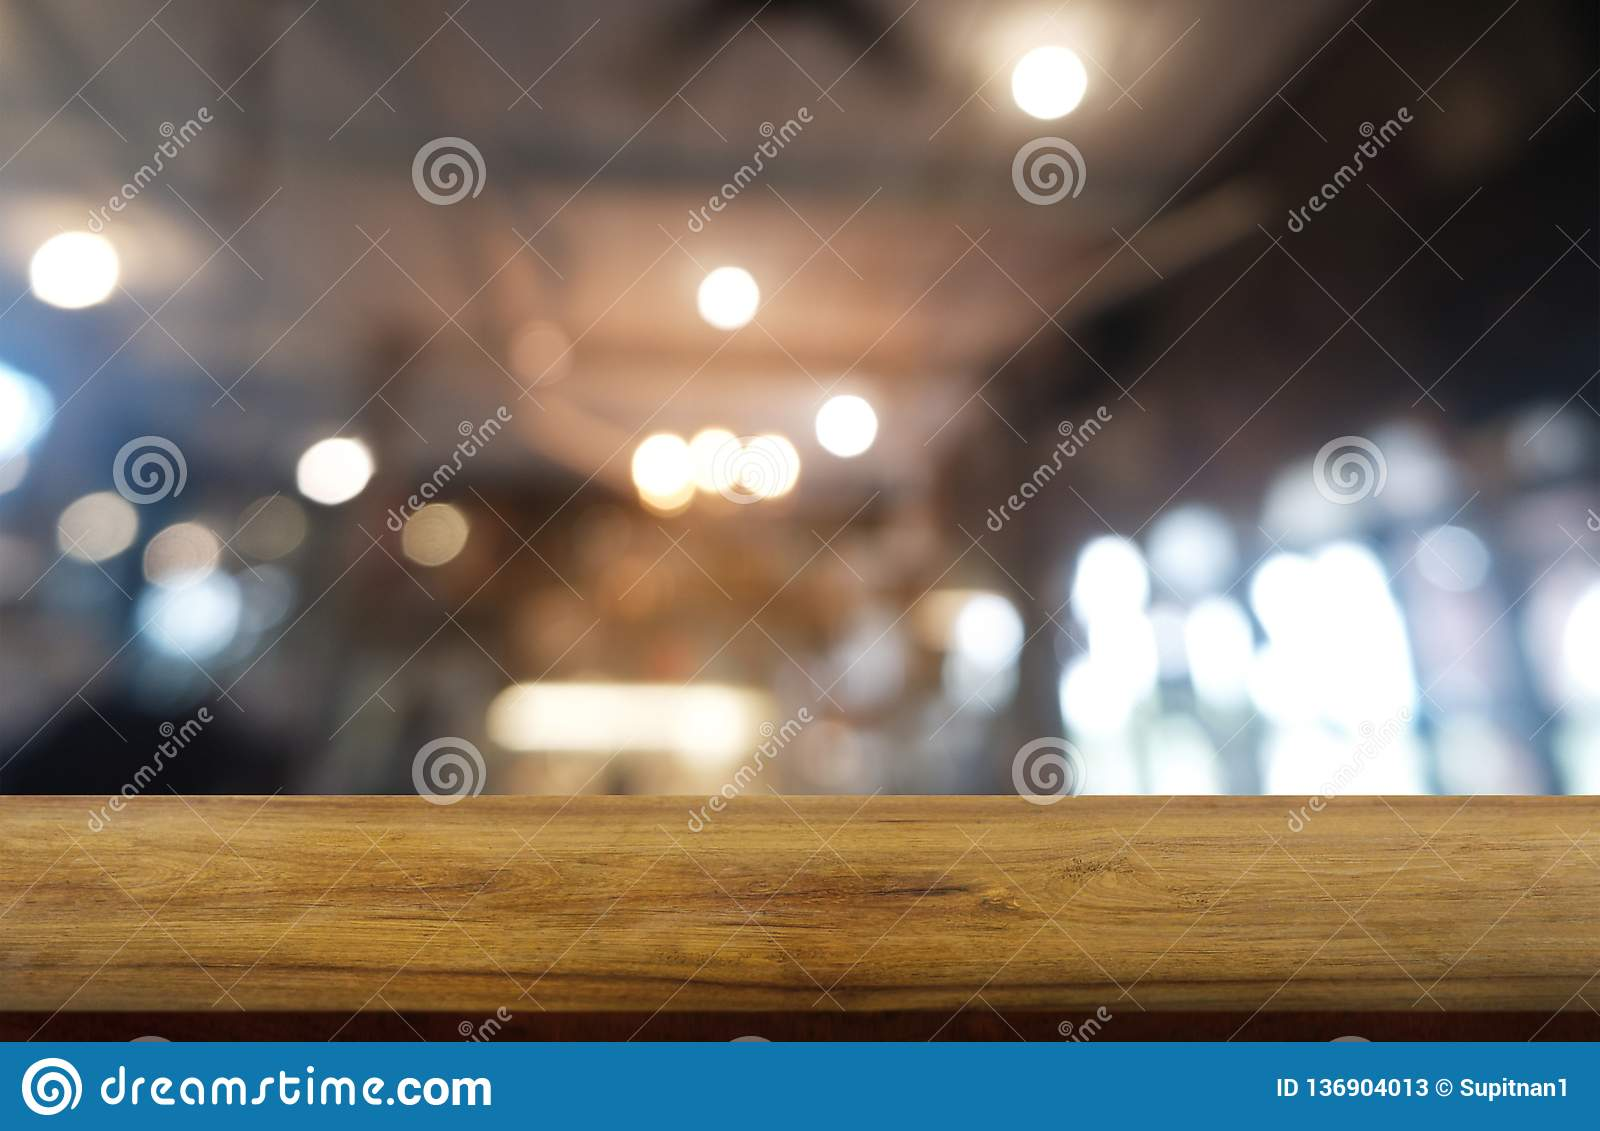 Empty dark wooden table in front of abstract blurred background of restaurant, cafe and coffee shop interior. can be used for